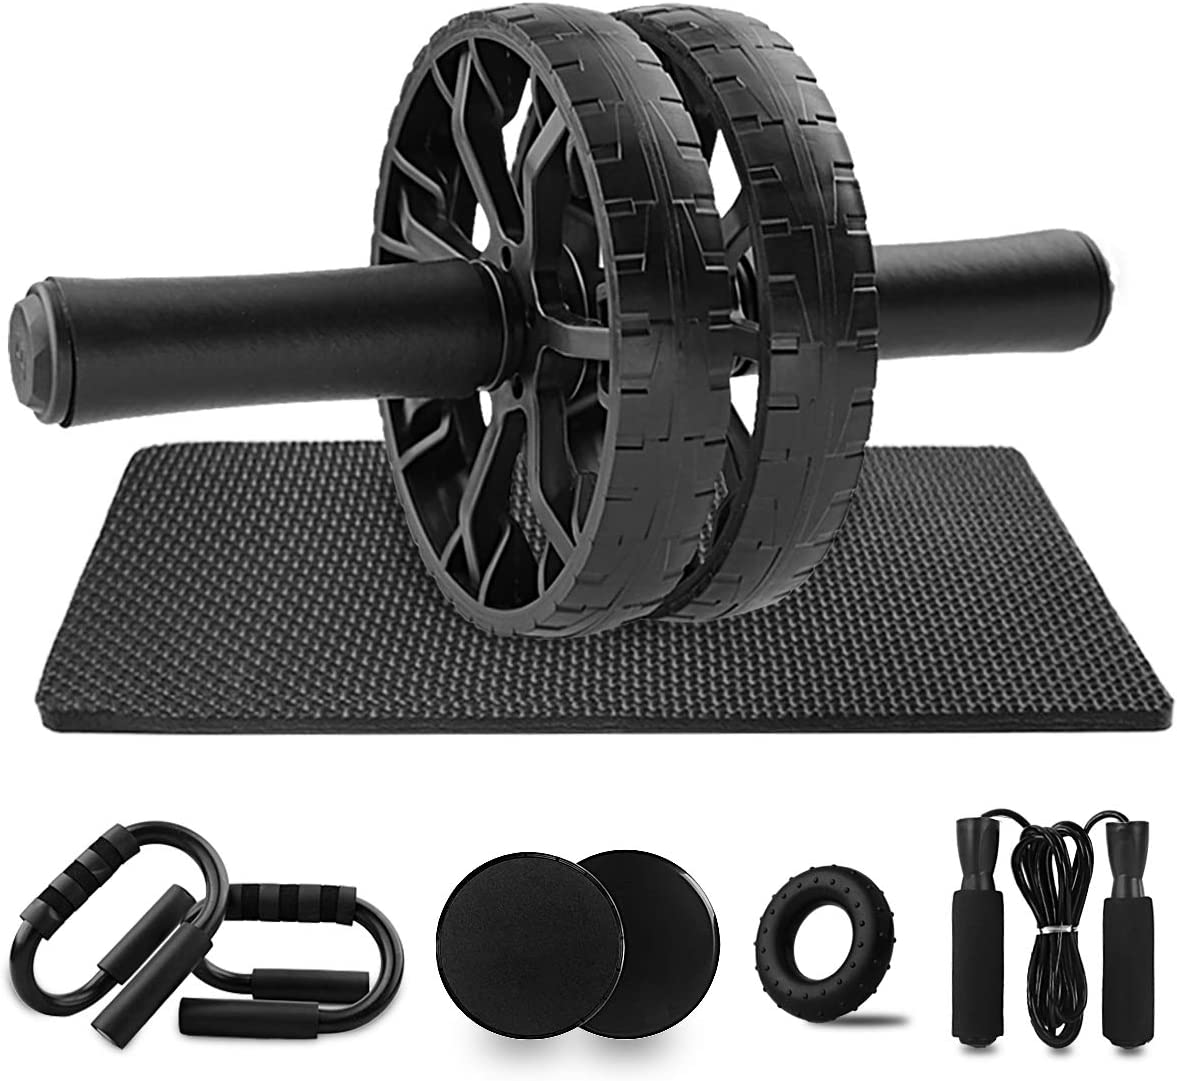 Heunwa Abs Workout Equipment, 6-in-1 Ab Wheel Roller Kit with Knee Pad, Push-Up Bars, Core Sliders, Jump Rope and Hand Strengthener Grip Ring, Home Gym Exercise Equipment for Men & Women